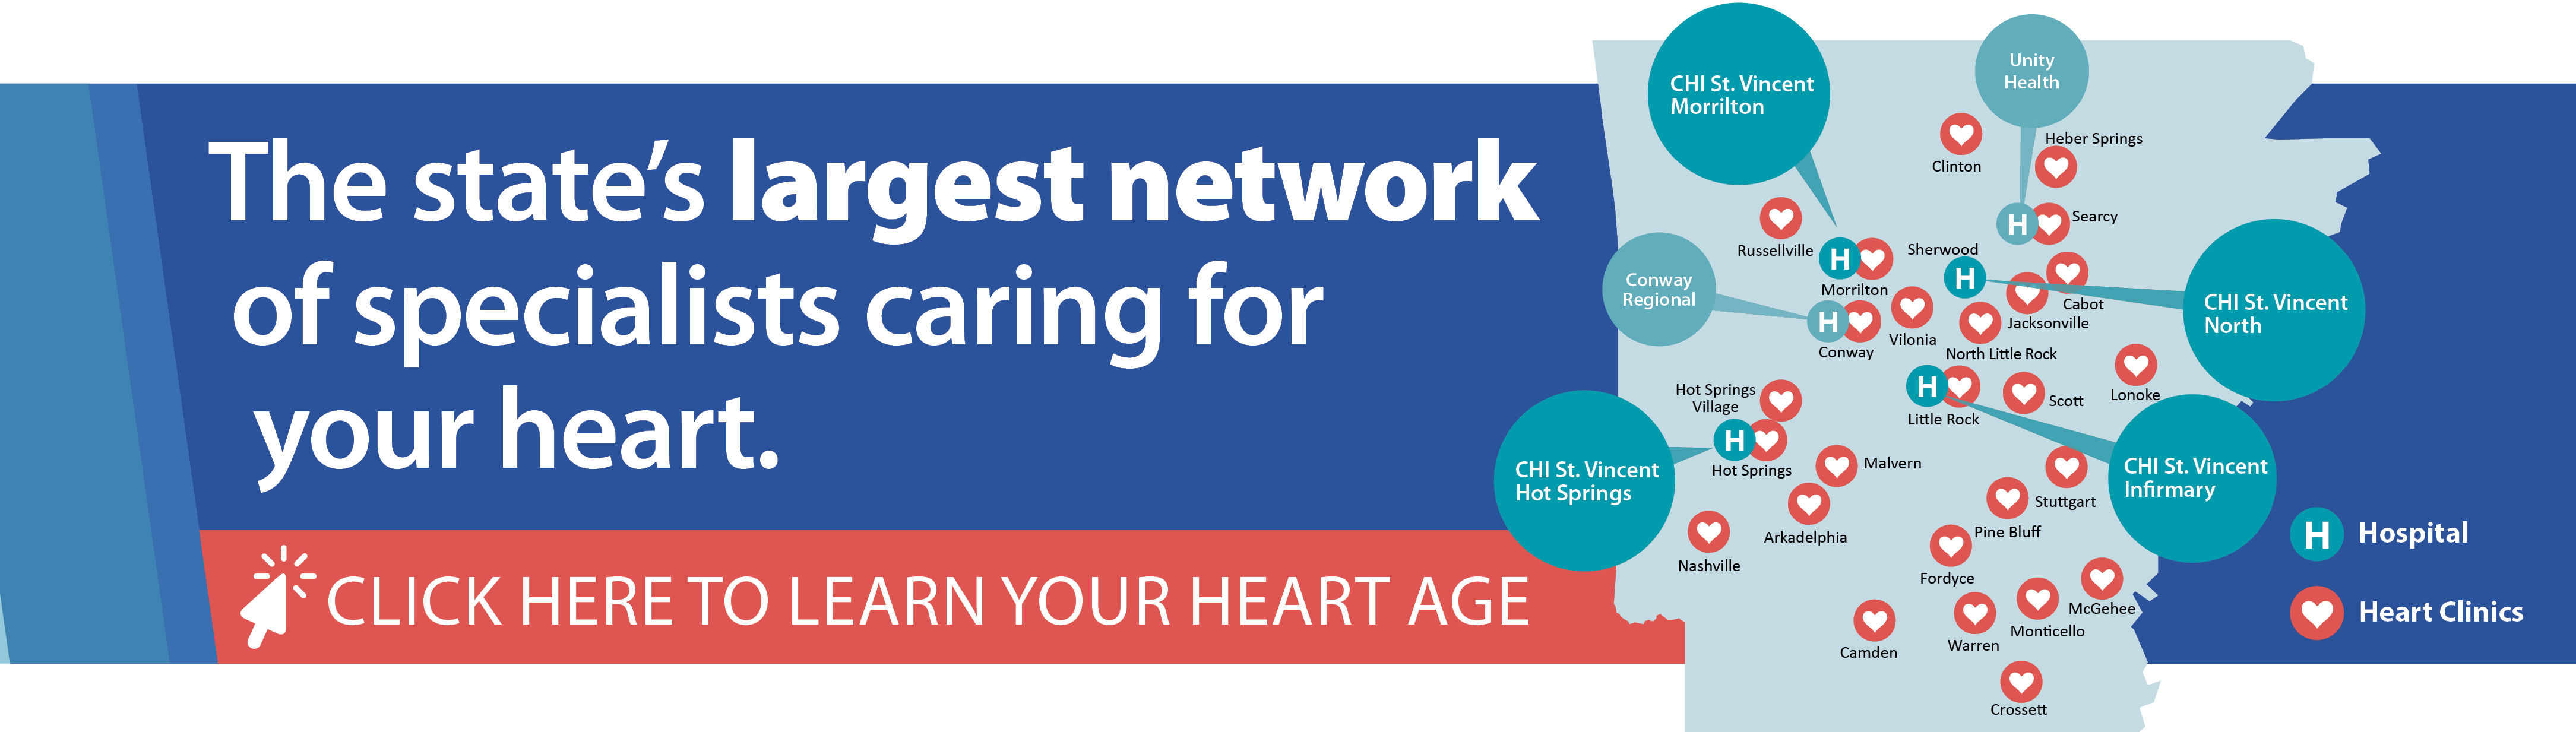 Click here to learn your heart age.